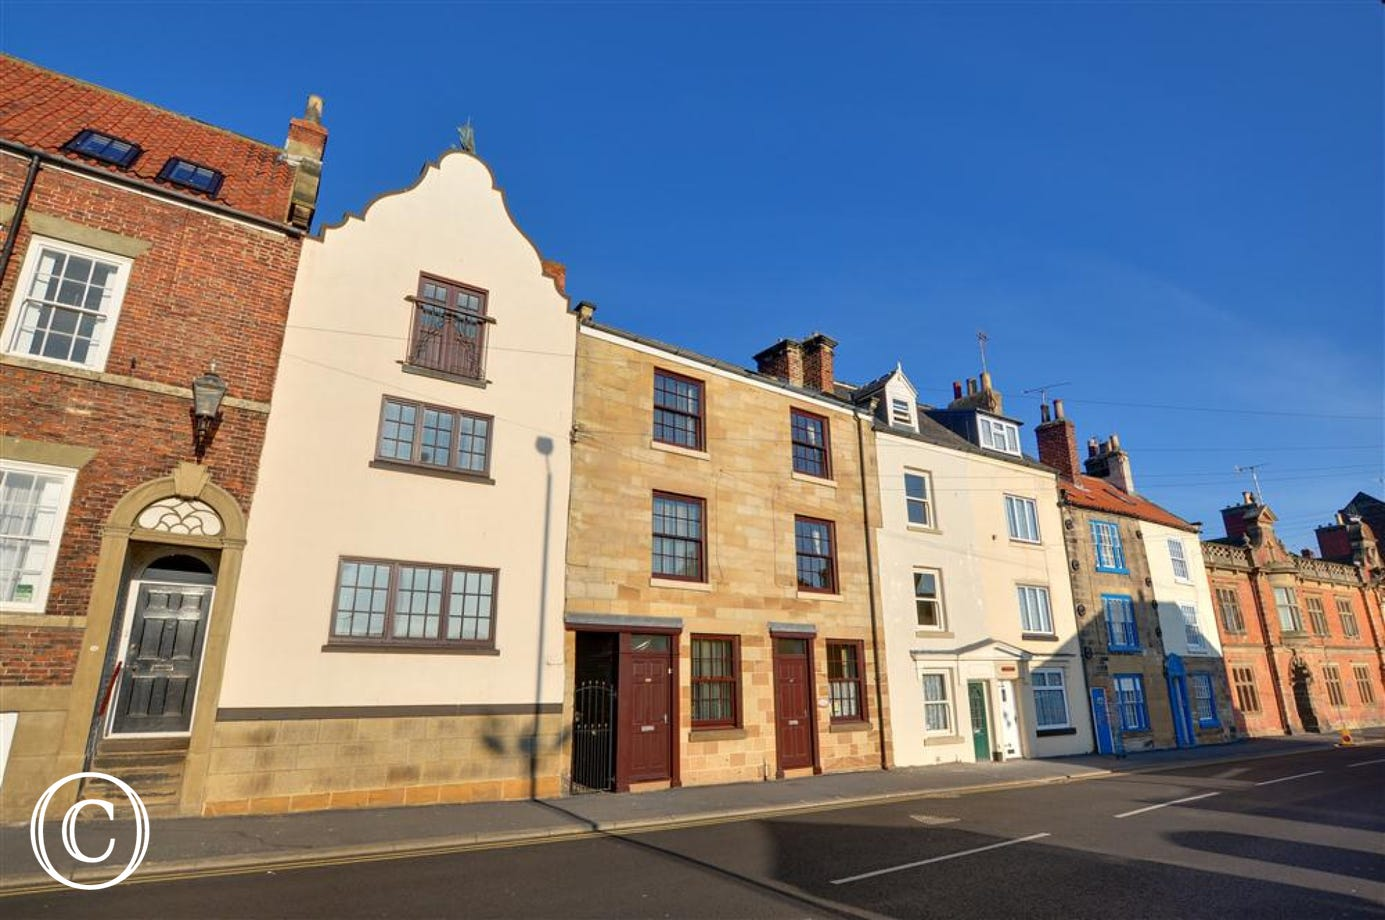 Situated on the historical Church Street which is part of Whitby's East side.